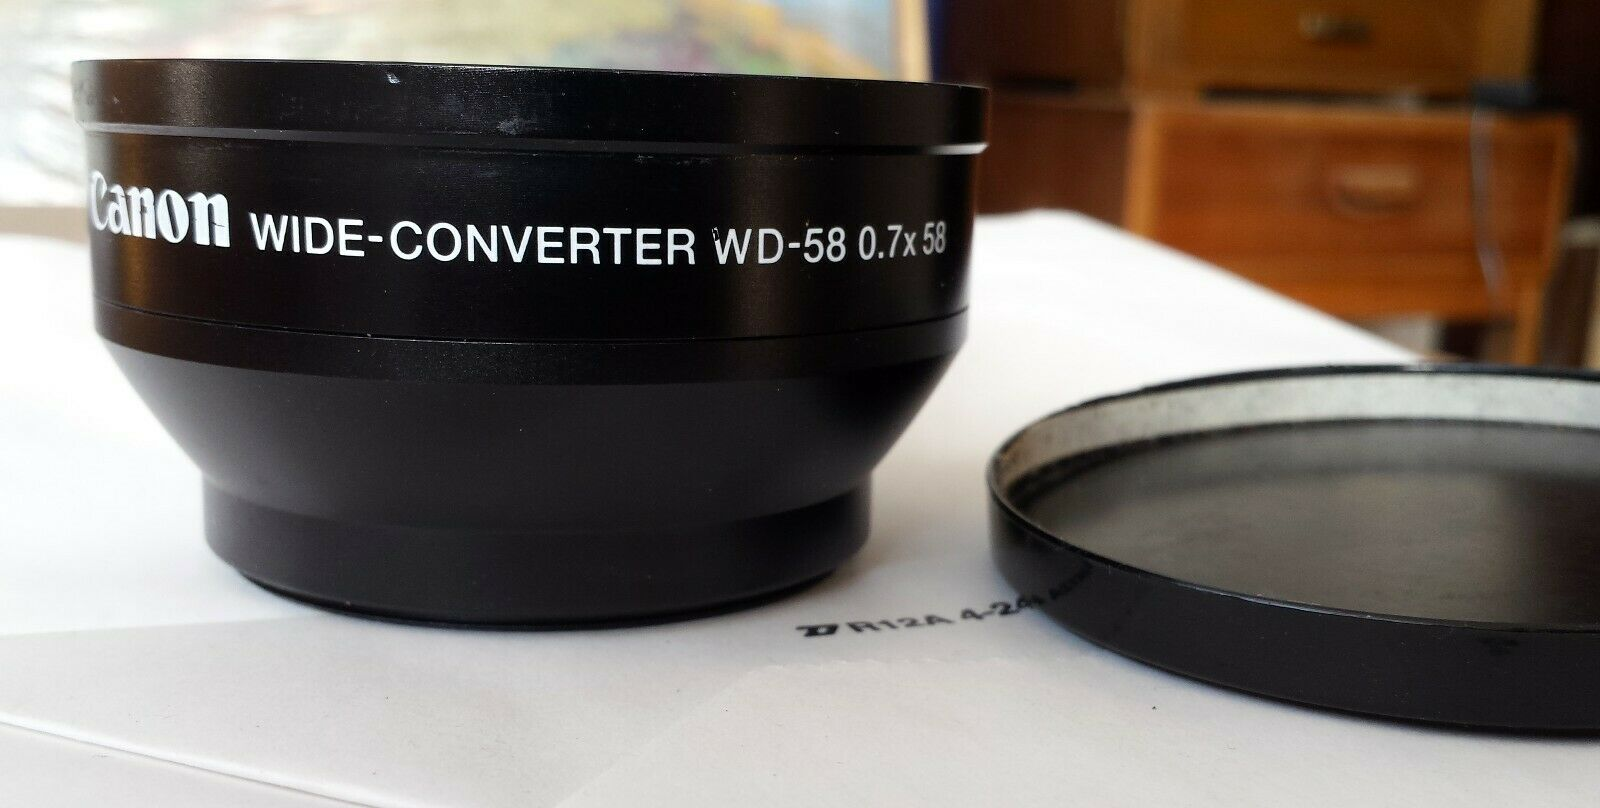 Canon WD-58 Wide Angle Converter WD58 Lens .7x Adapter Lens 58mm Thread - $49.00